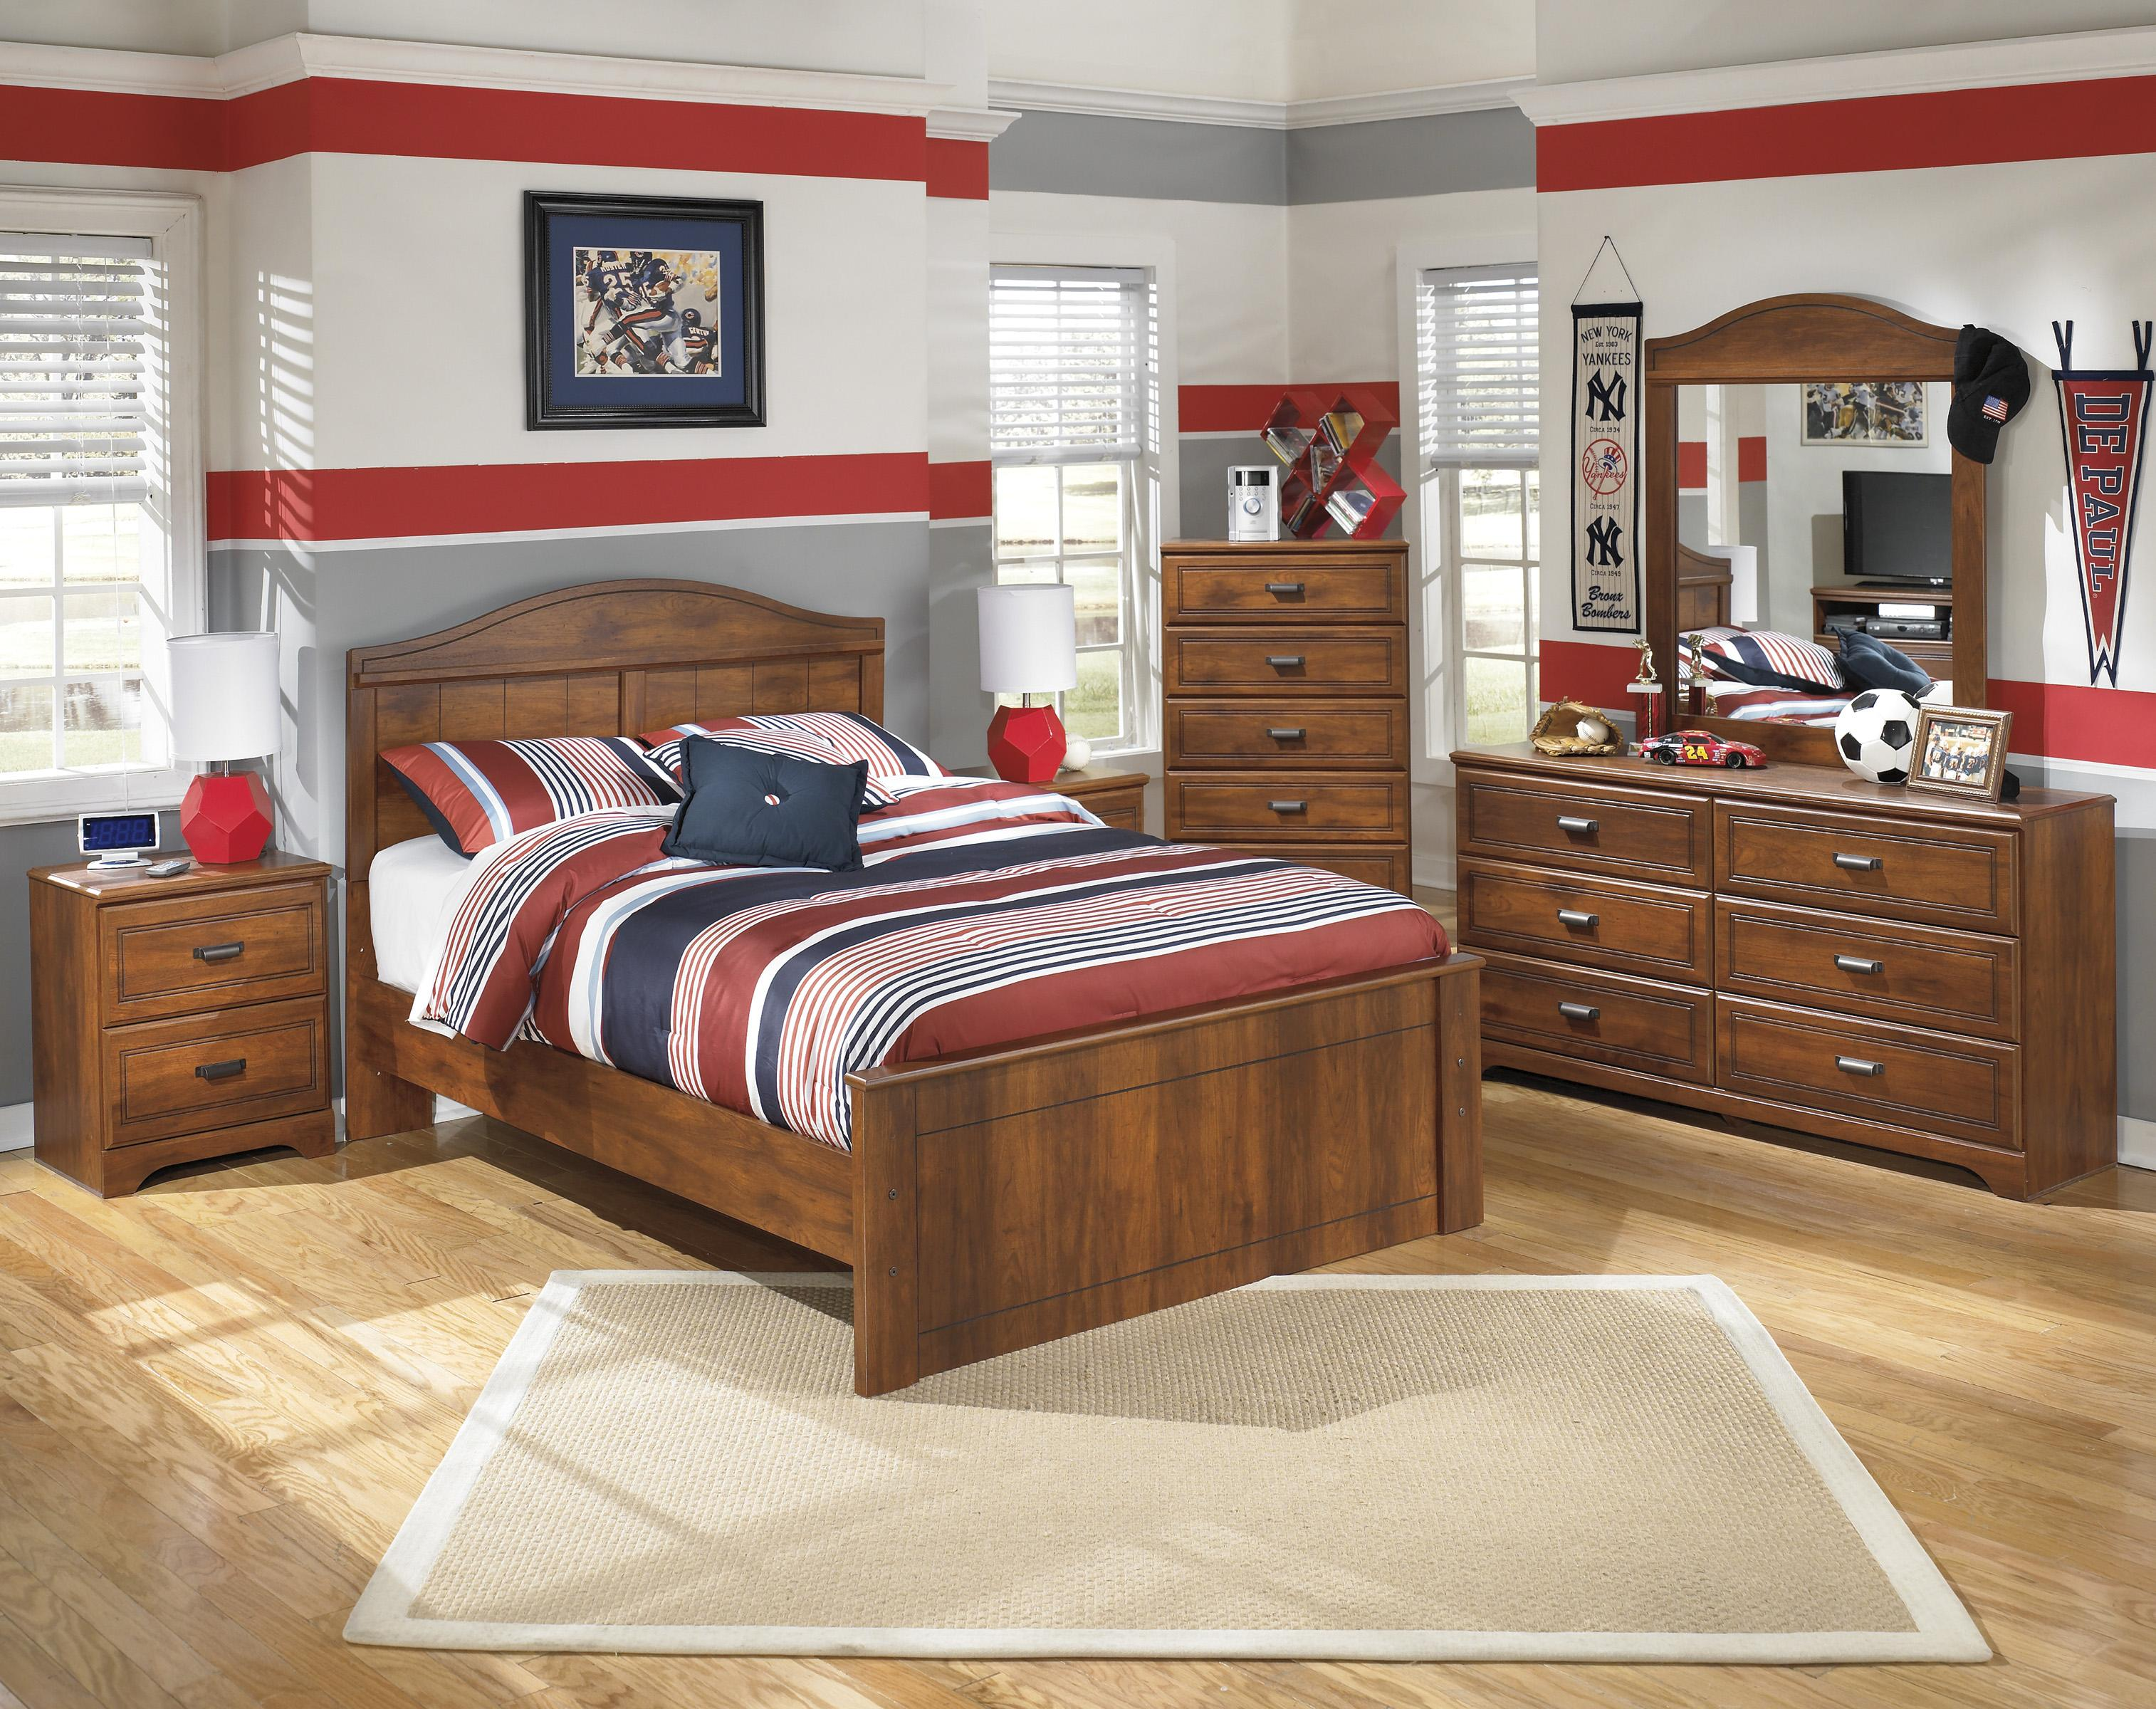 Barchan Full Bedroom Group by Signature Design by Ashley at Northeast Factory Direct